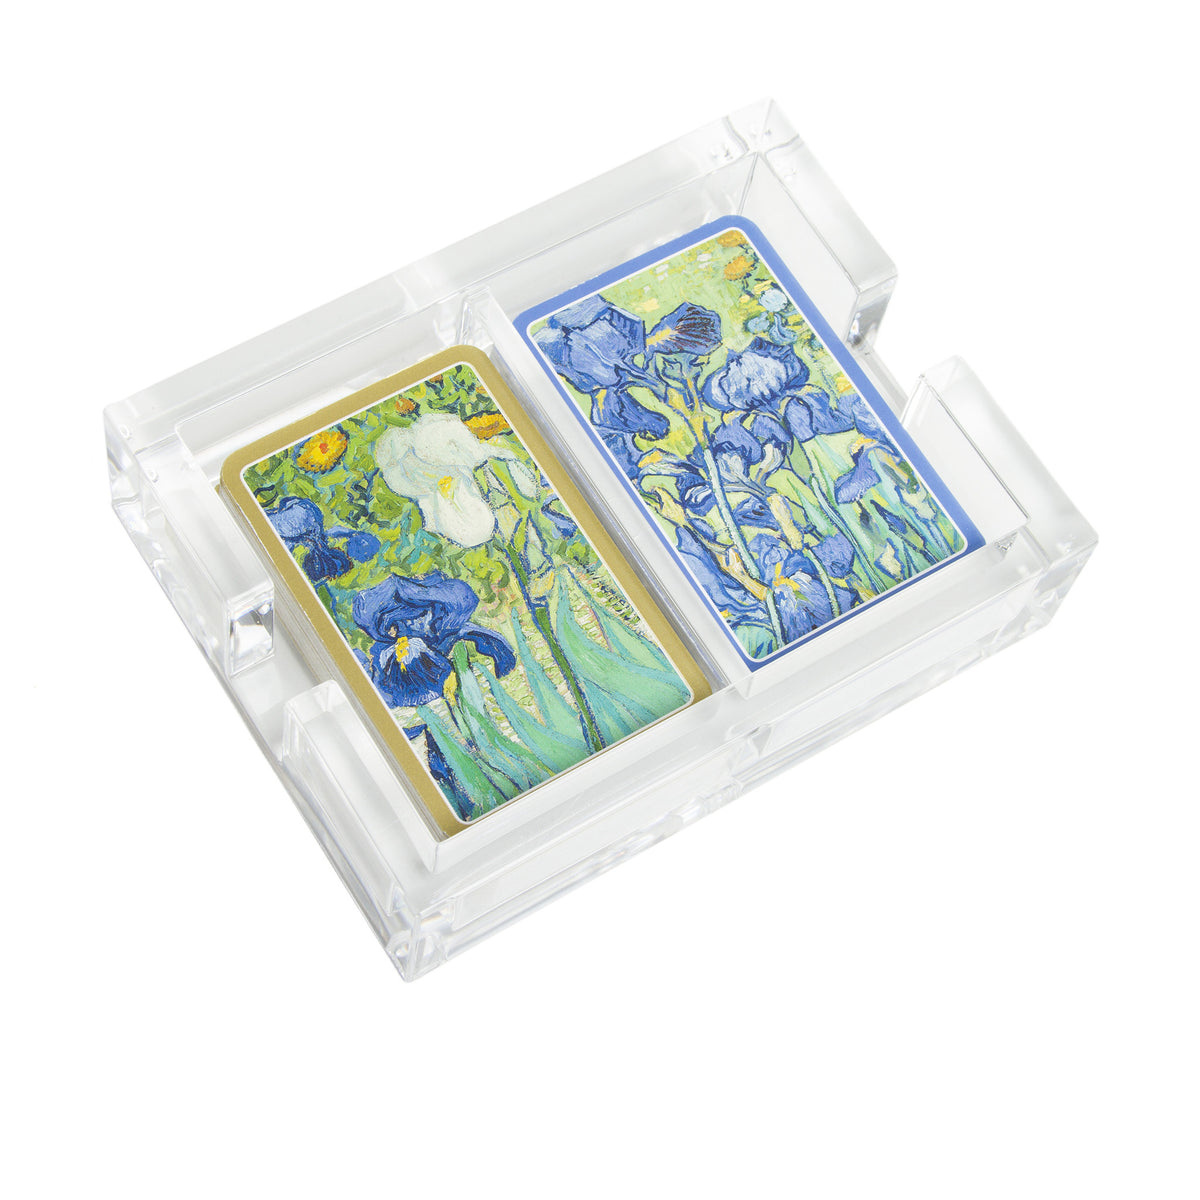 Van Gogh Irises Playing Cards in Acrylic Holder-2 Decks per Box | Getty Store